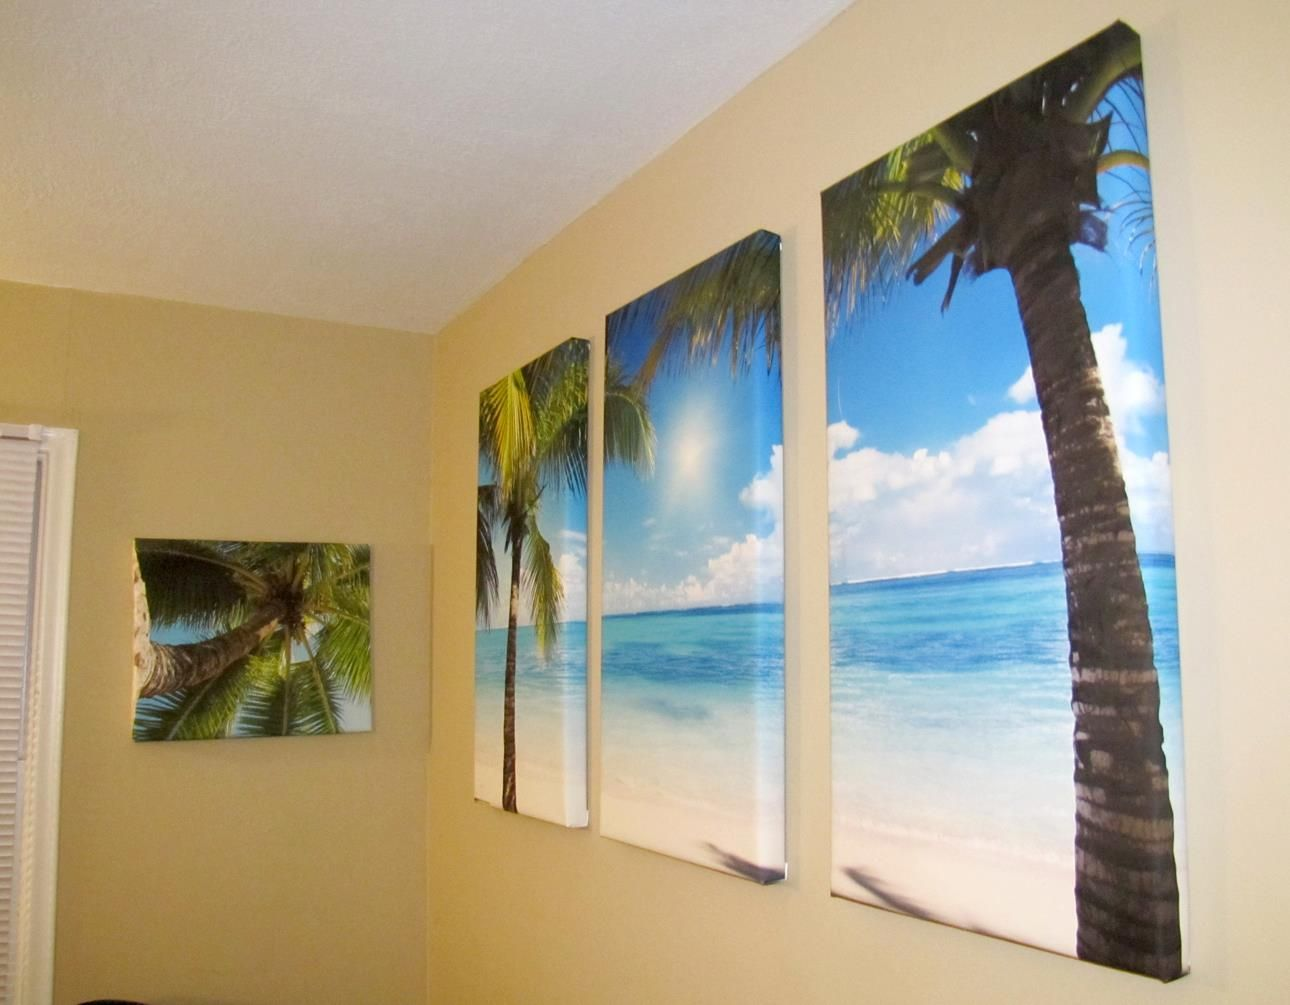 Diy canvas wall art do it yourself projects pinterest diy diy canvas wall art solutioingenieria Choice Image